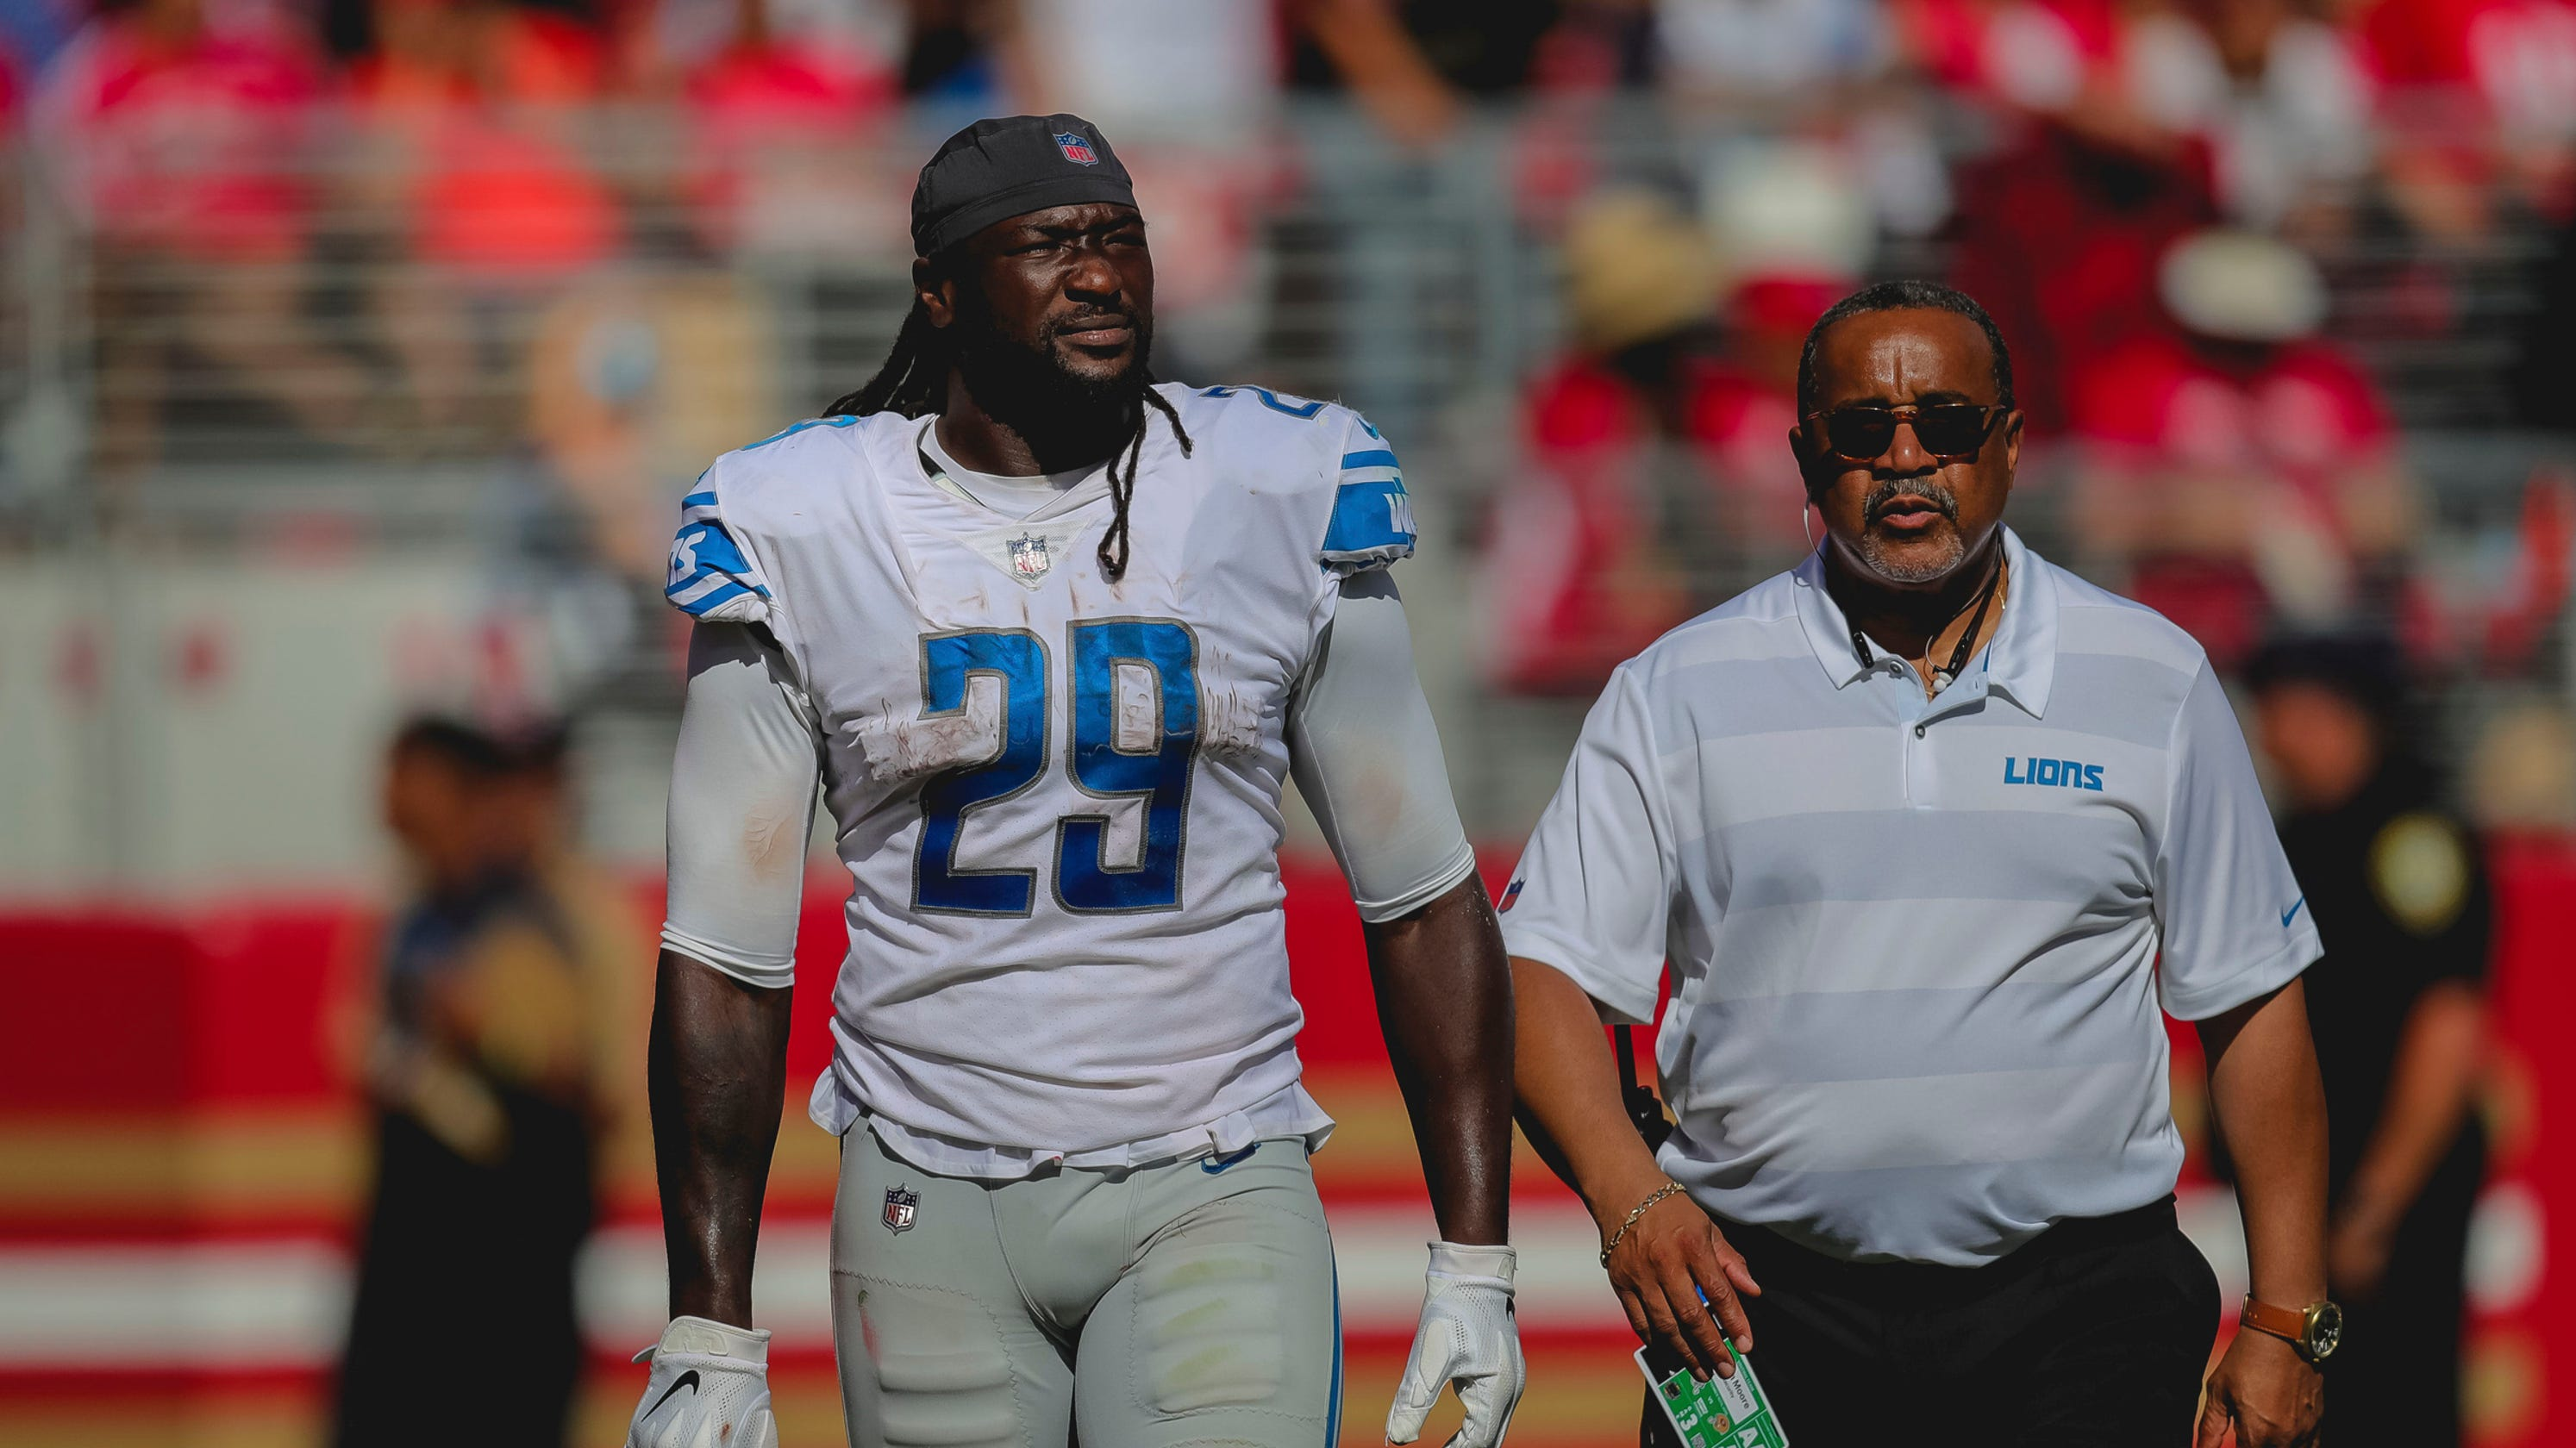 9819af2aa5b Detroit Lions' LeGarrette Blount expects NFL fine for shove, ejection